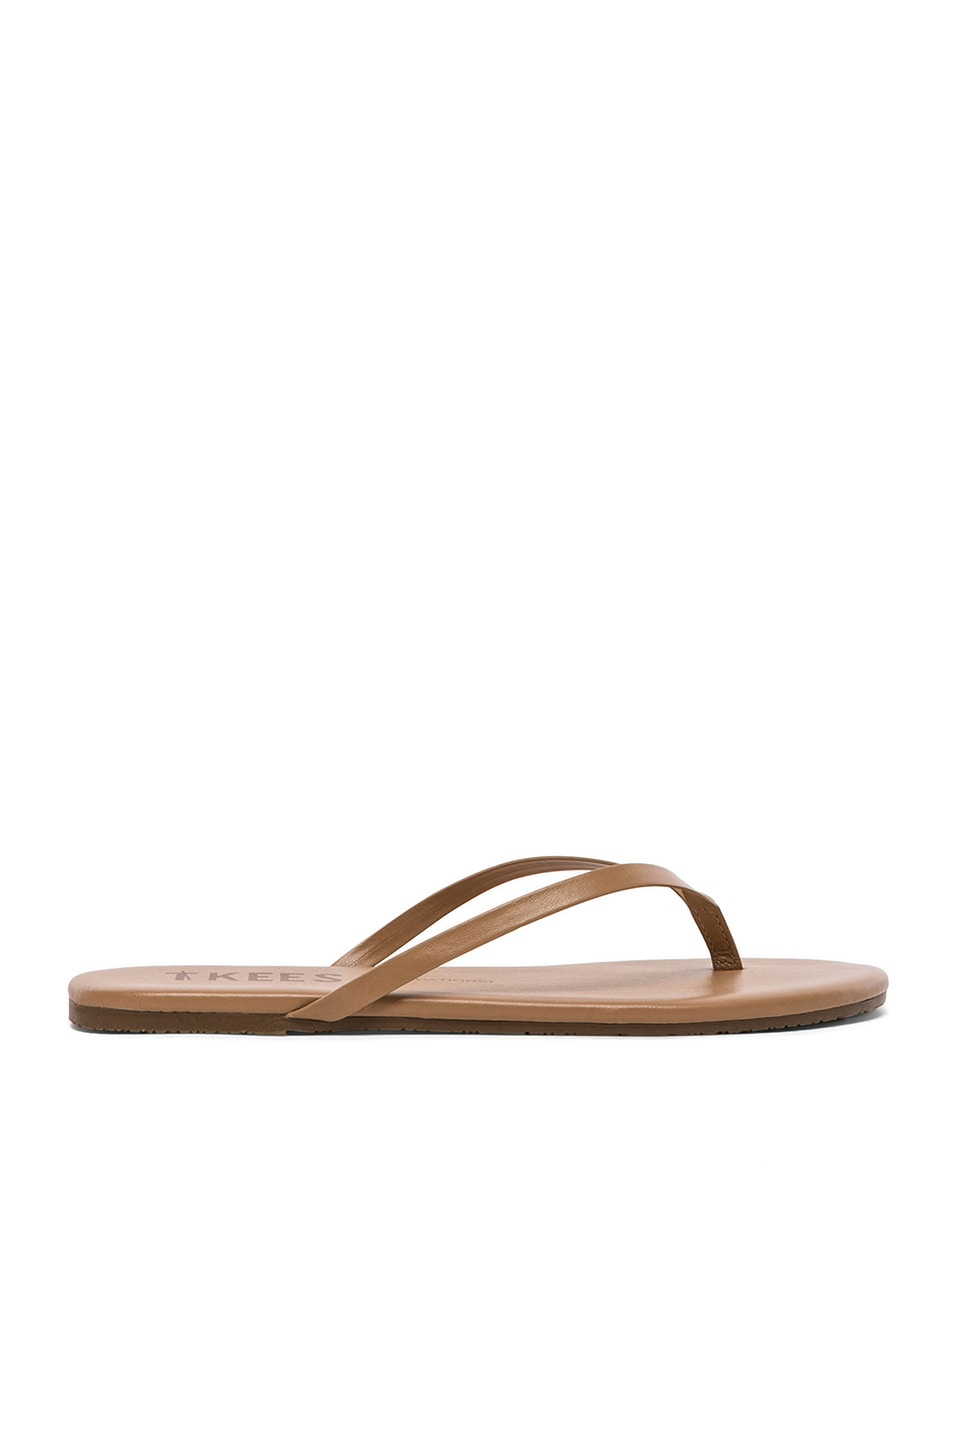 TKEES Sandal in Cocobutter